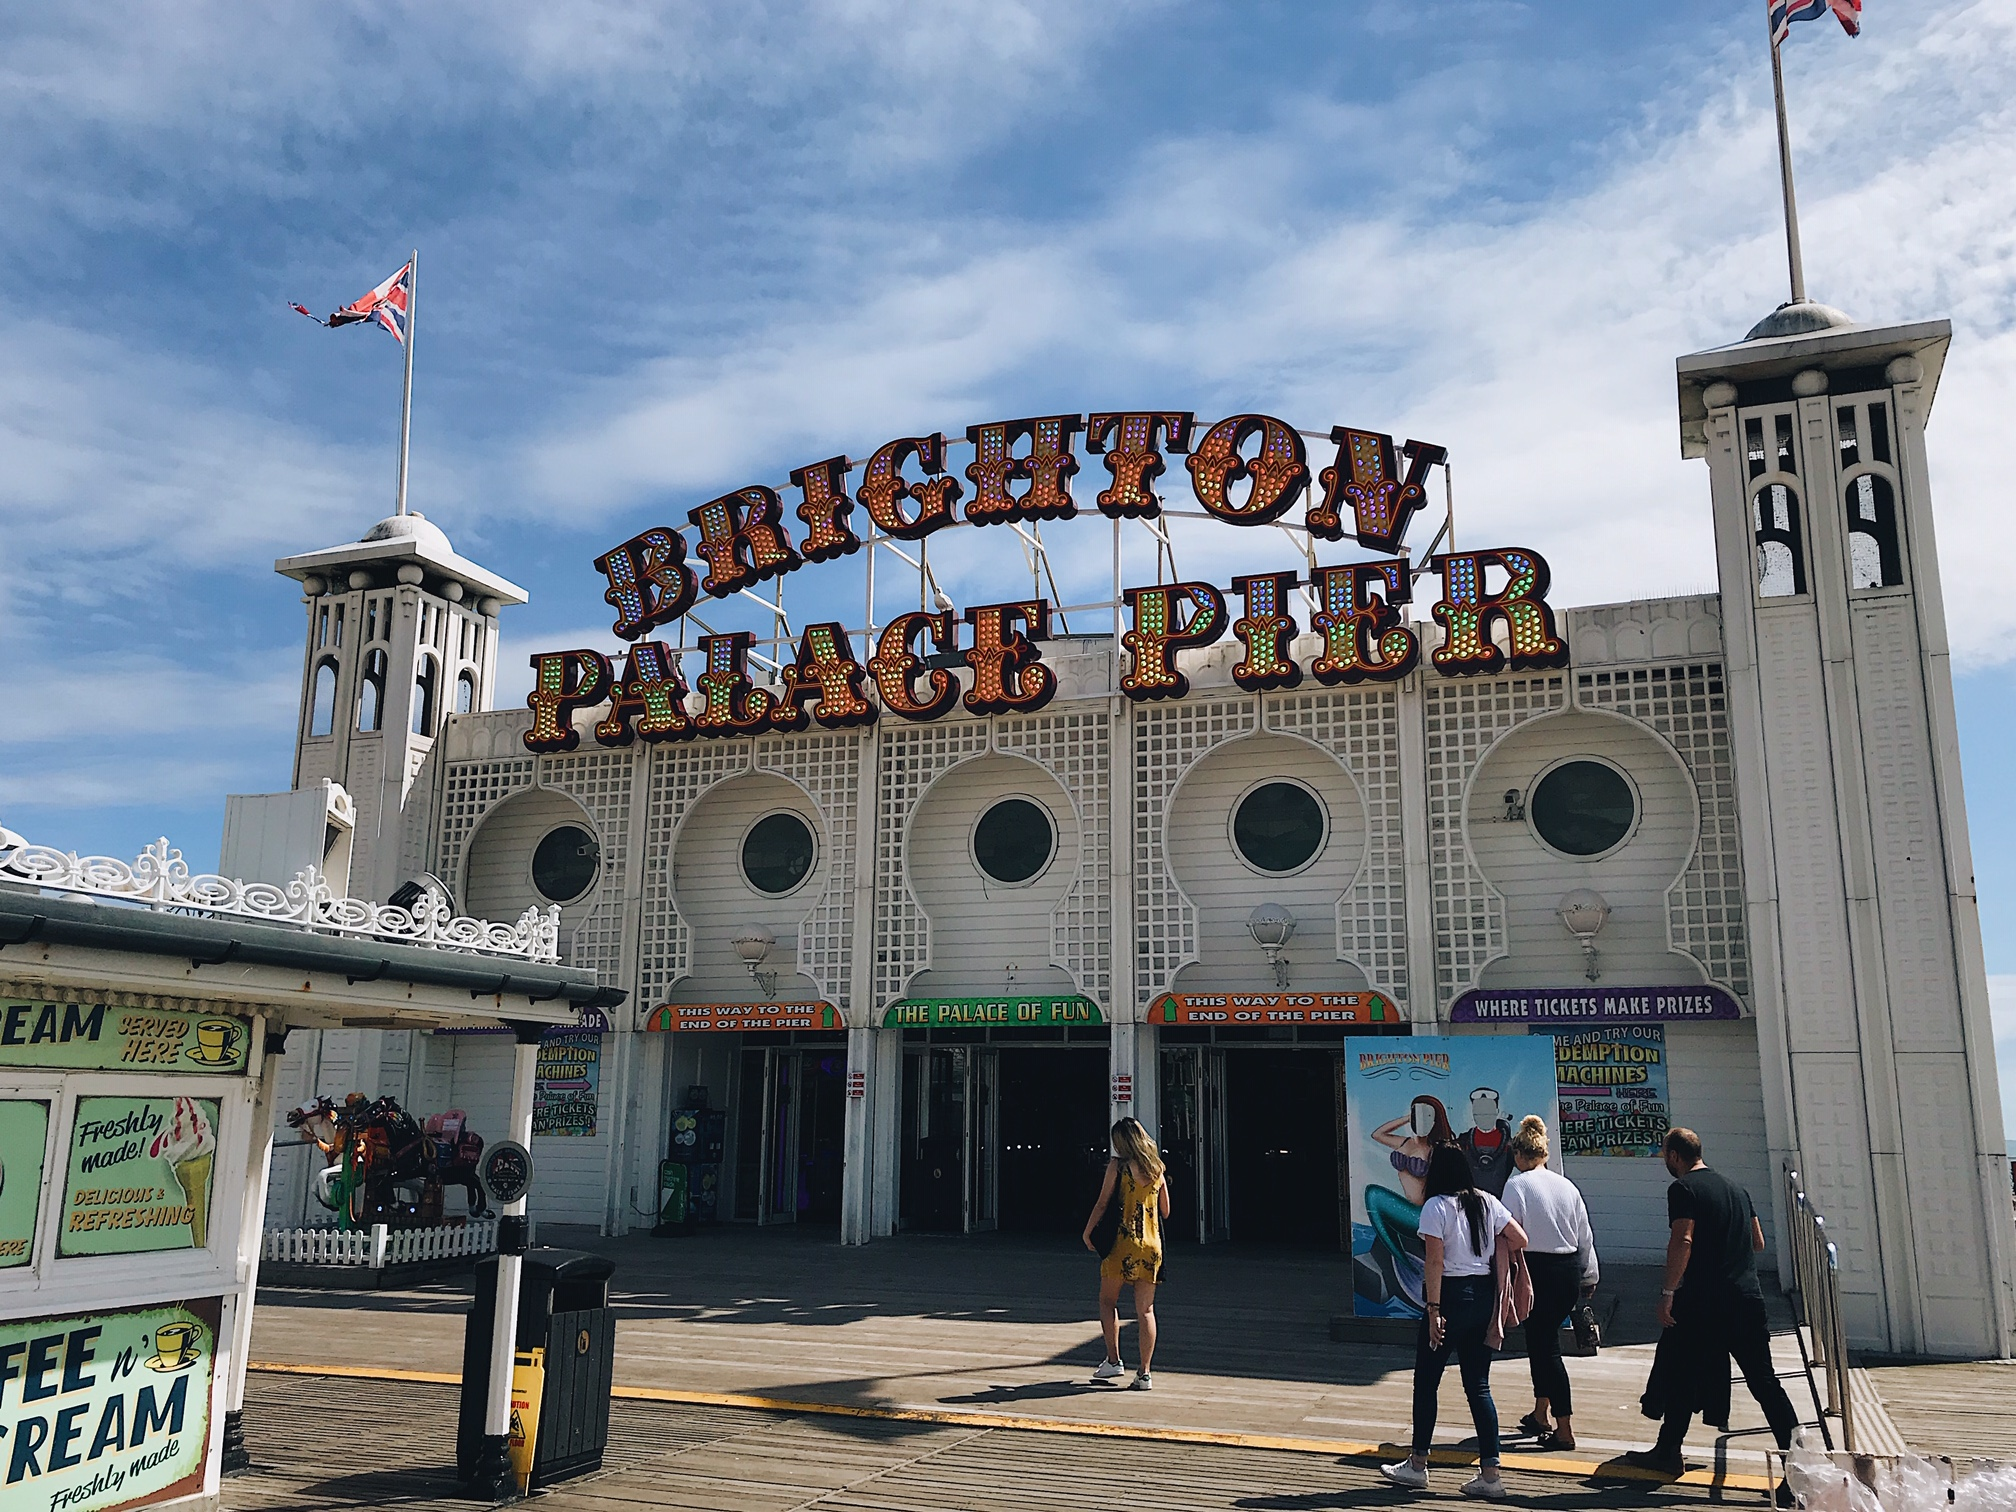 Brighton day trip: the Pier